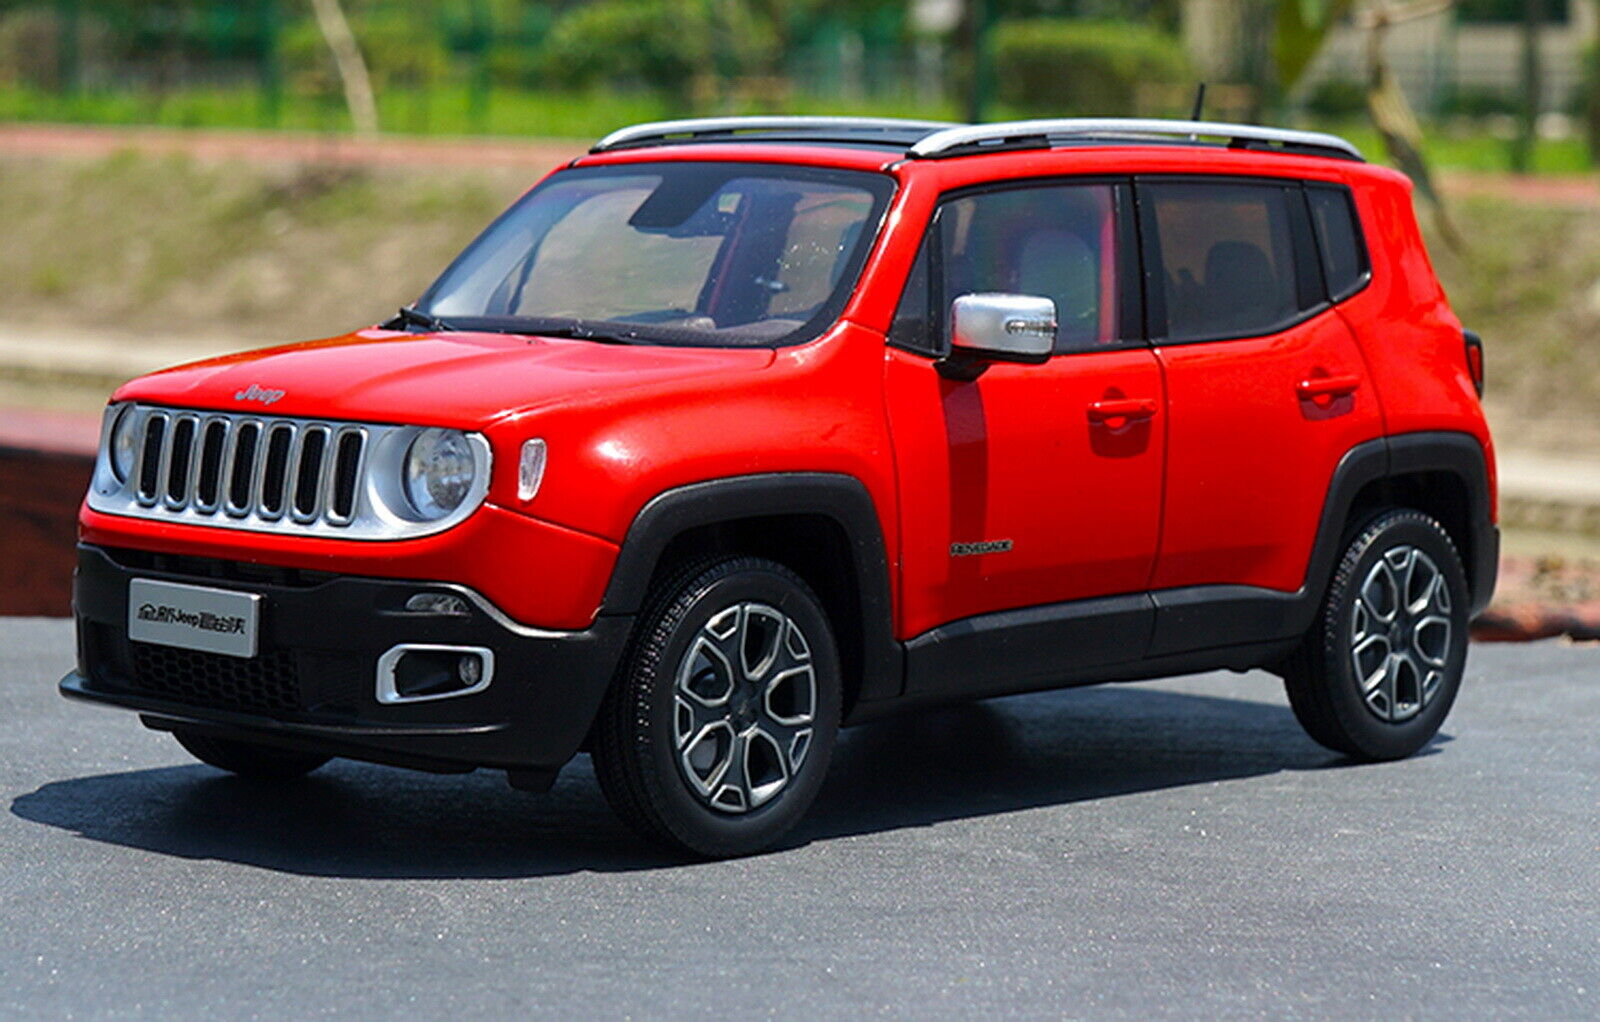 1 18 Scale Jeep Renegade Suv rot Diecast Car Model Toy Collection Gift